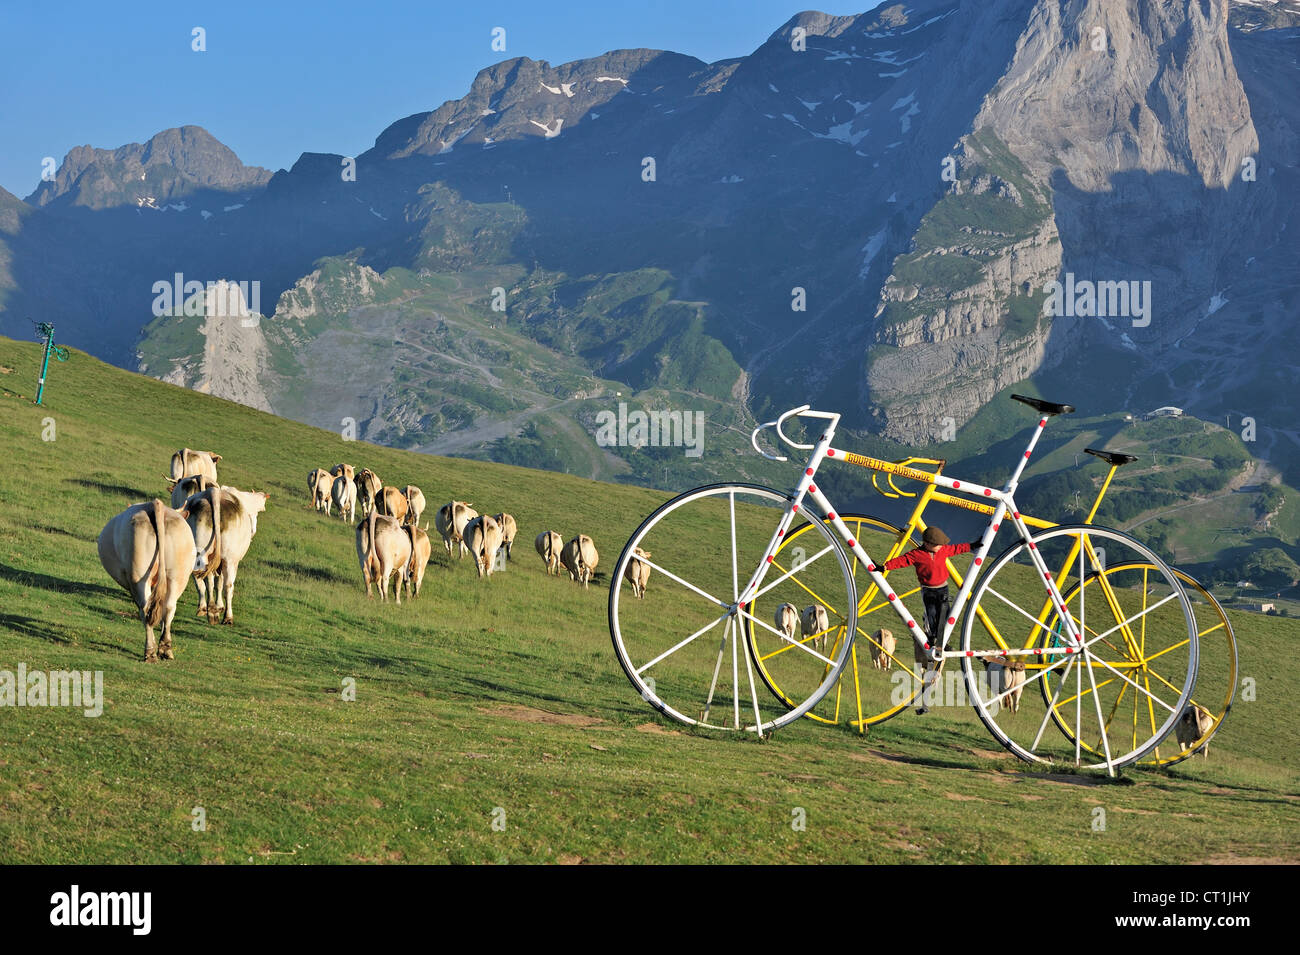 Herd of cows on mountain pasture and giant bicycle sculptures at the Col d'Aubisque, Pyrénées-Atlantiques, - Stock Image